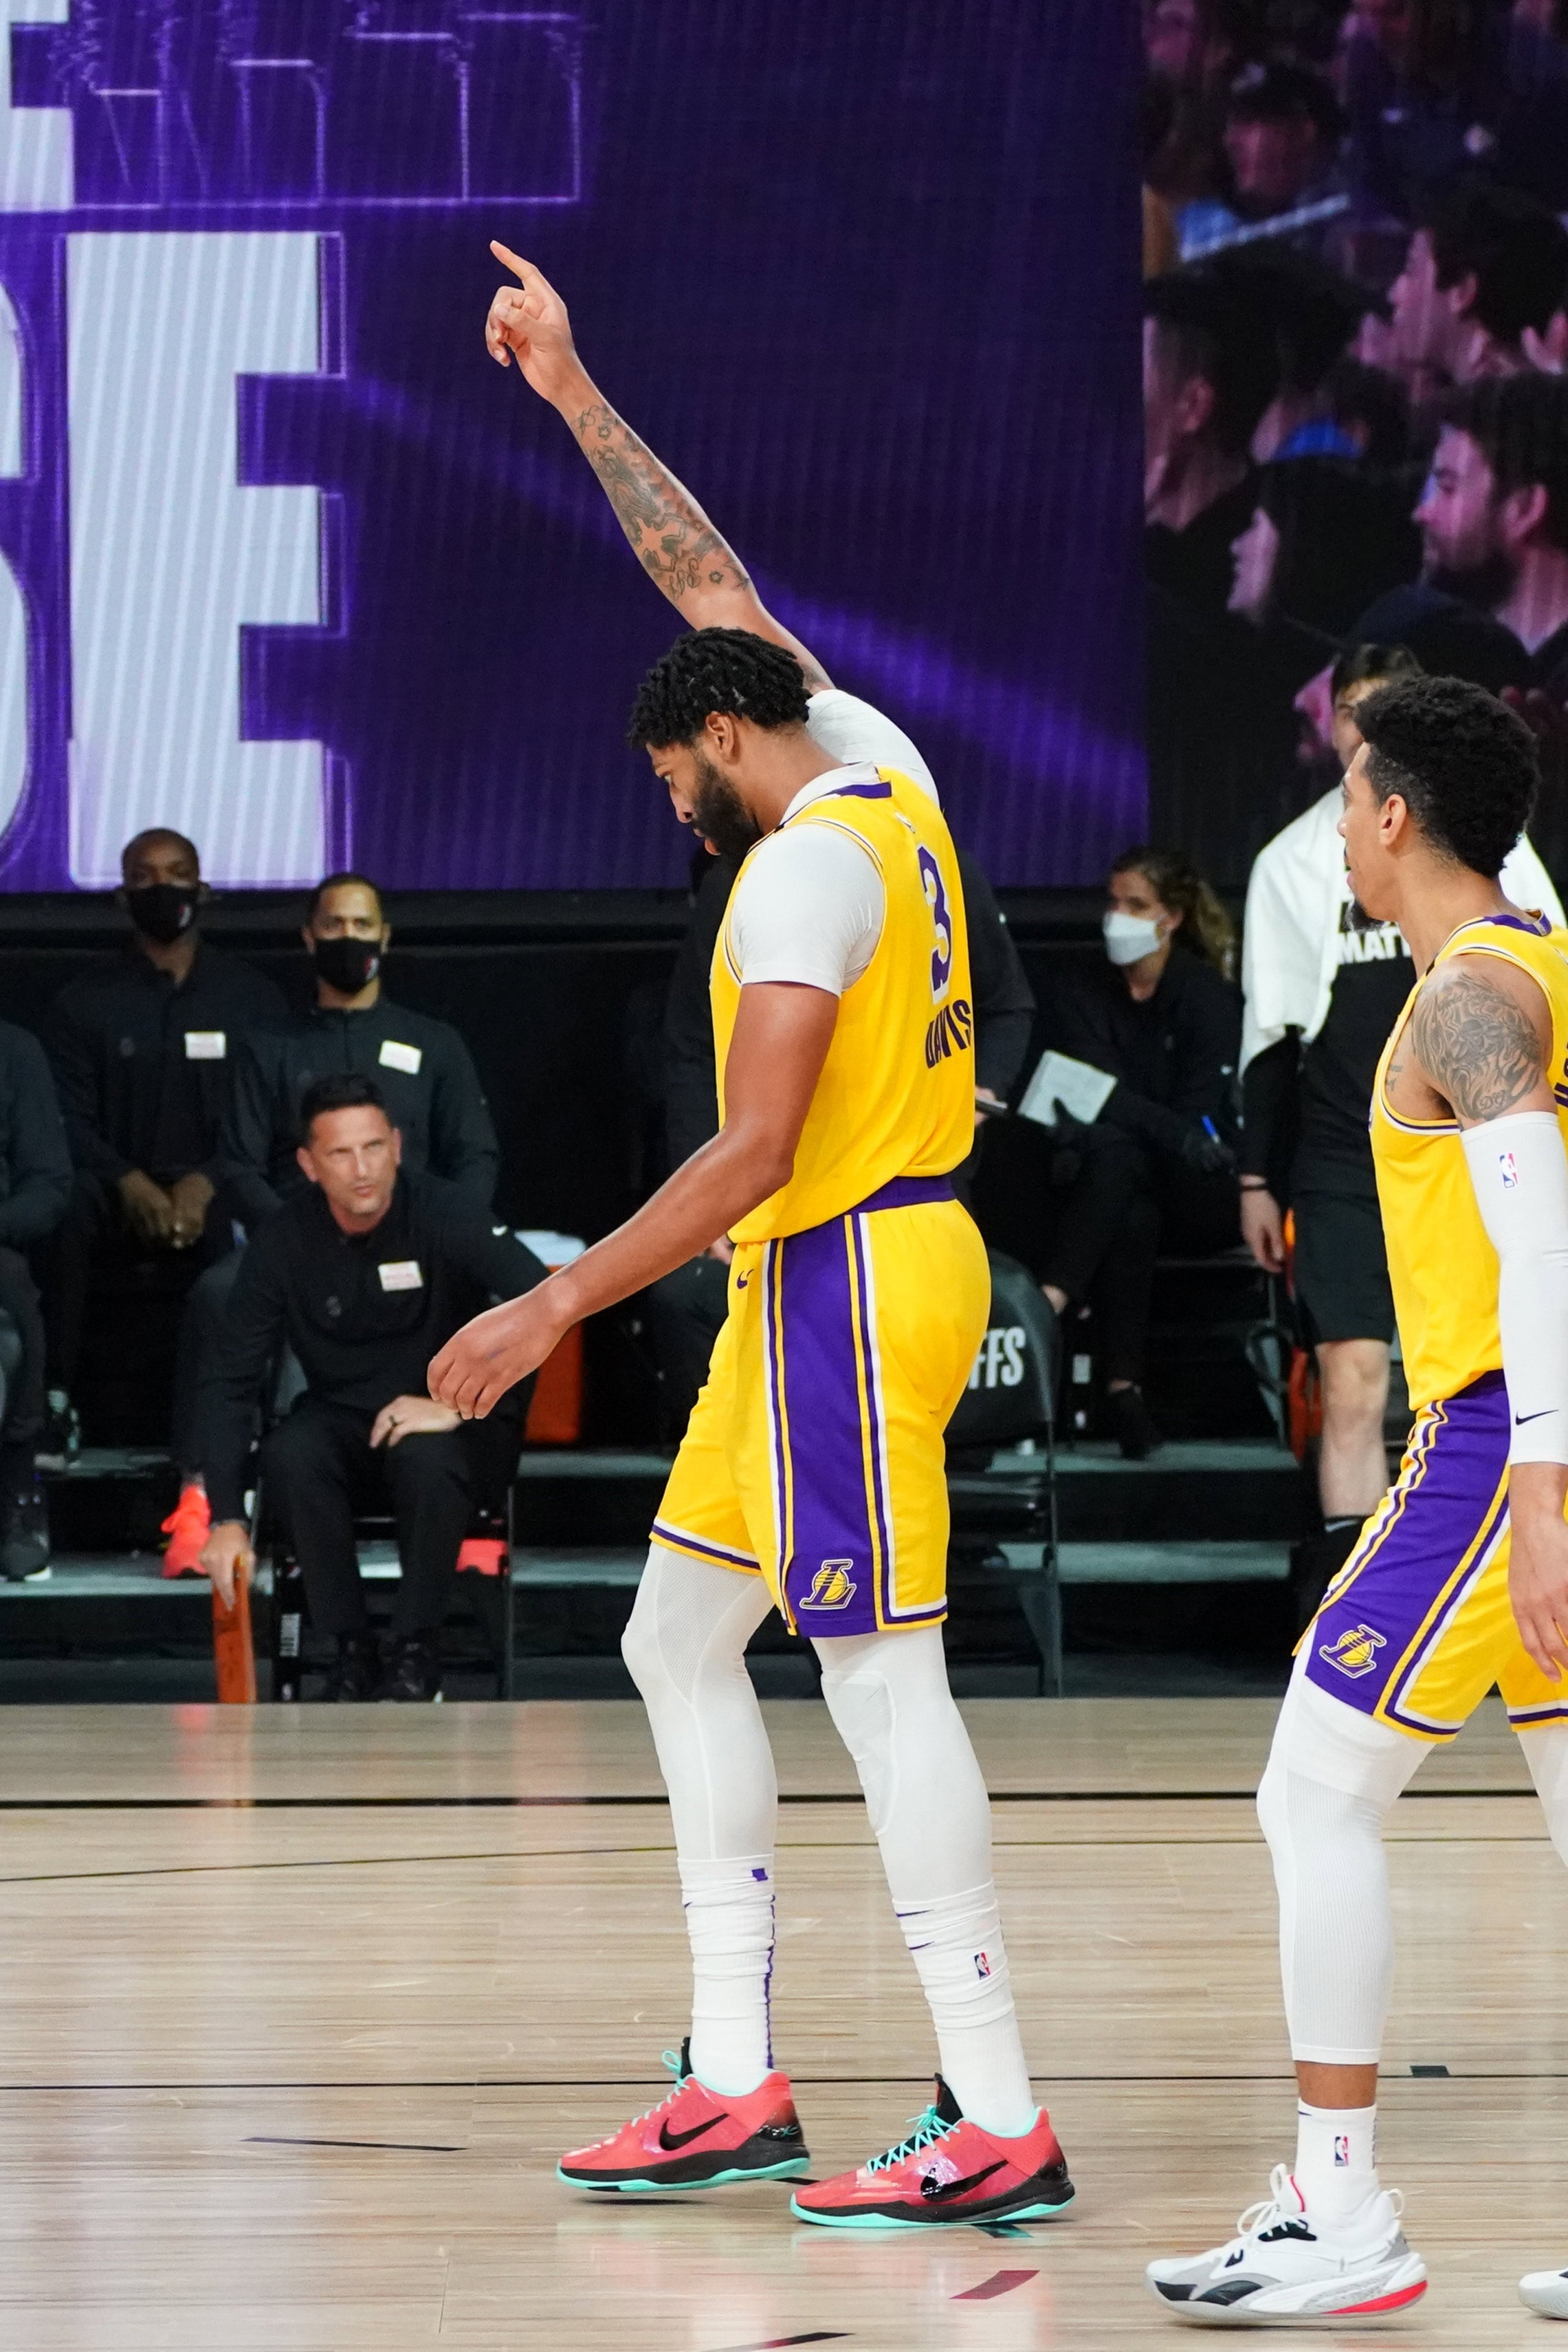 Anthony Davis #3 of the Los Angeles Lakers reacts during a game against the Portland Trail Blazers during Round One, Game Five of the NBA Playoffs on August 29, 2020 (Jesse D. Garrabrant)